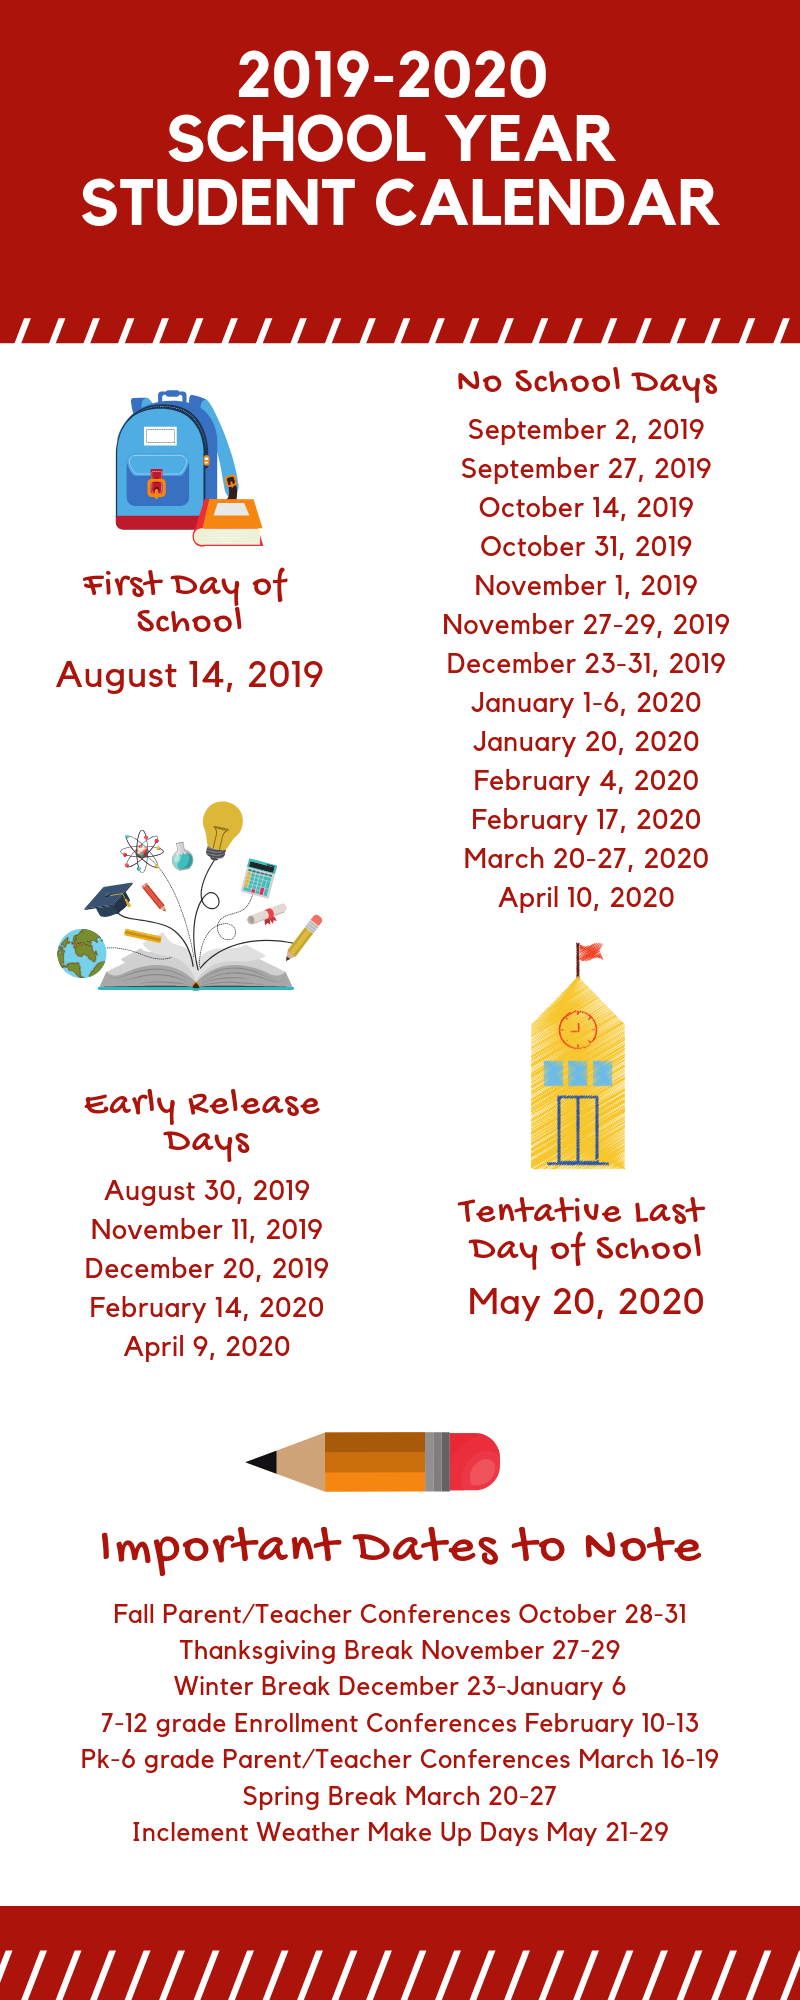 The 2019-2020 student calendar is now available.